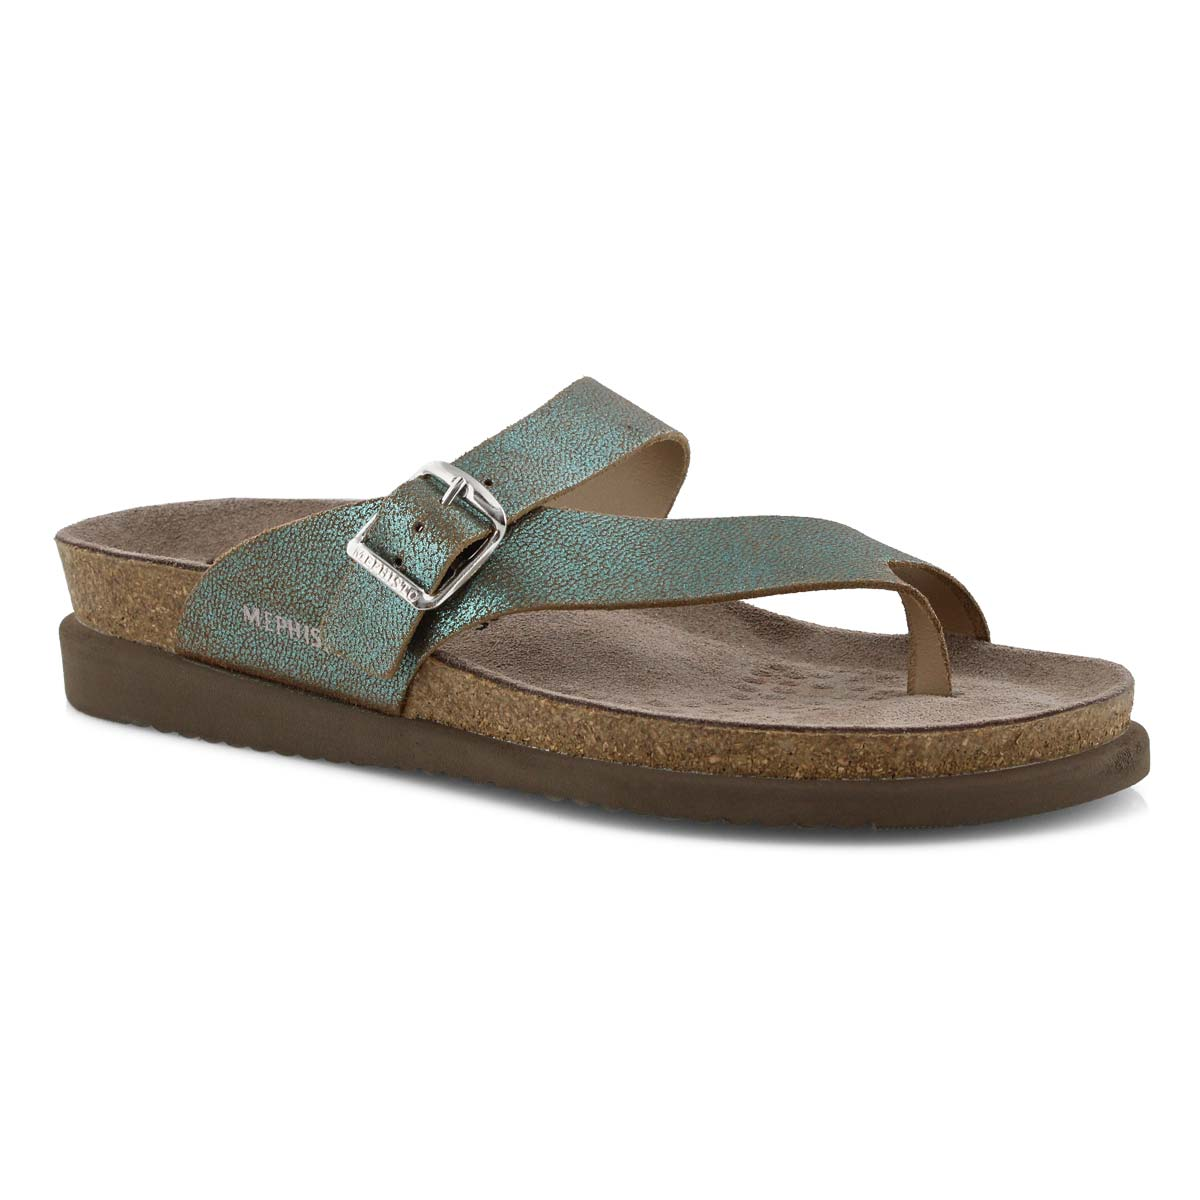 Lds Helen grn reptile cork footbed thong